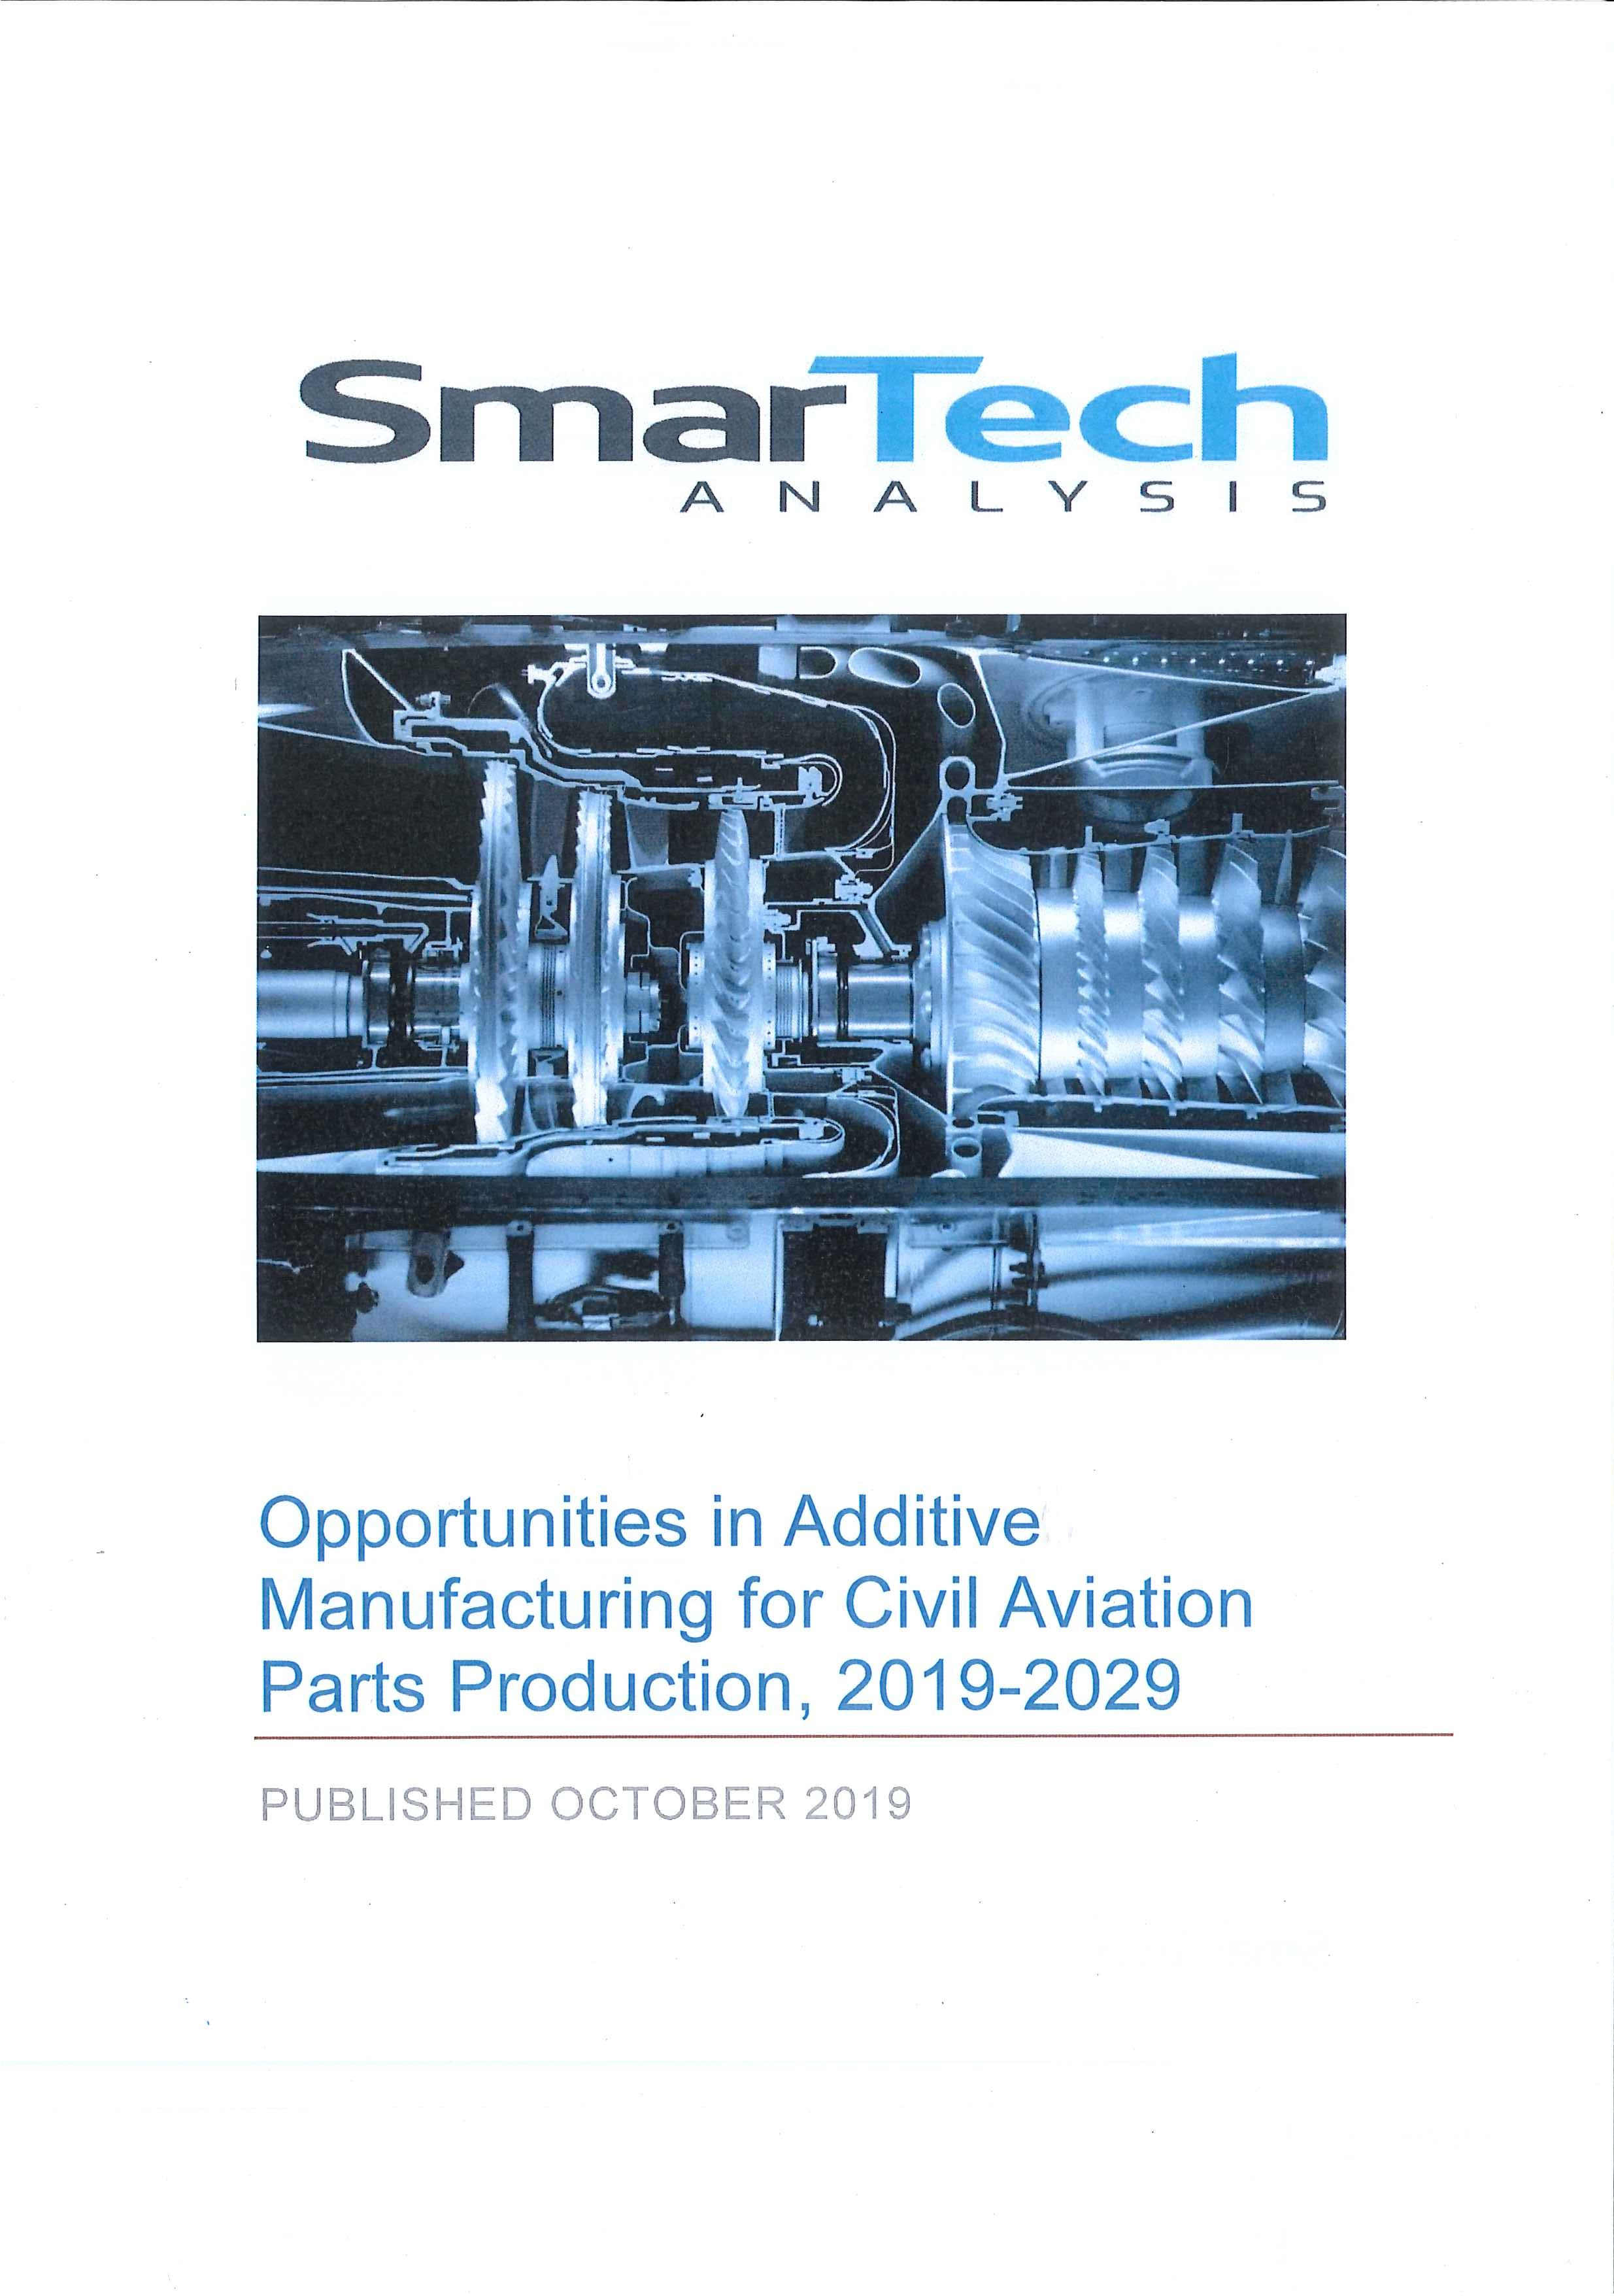 Opportunities in additive manufacturing for civil aviation parts production [e-book].2019-2029.